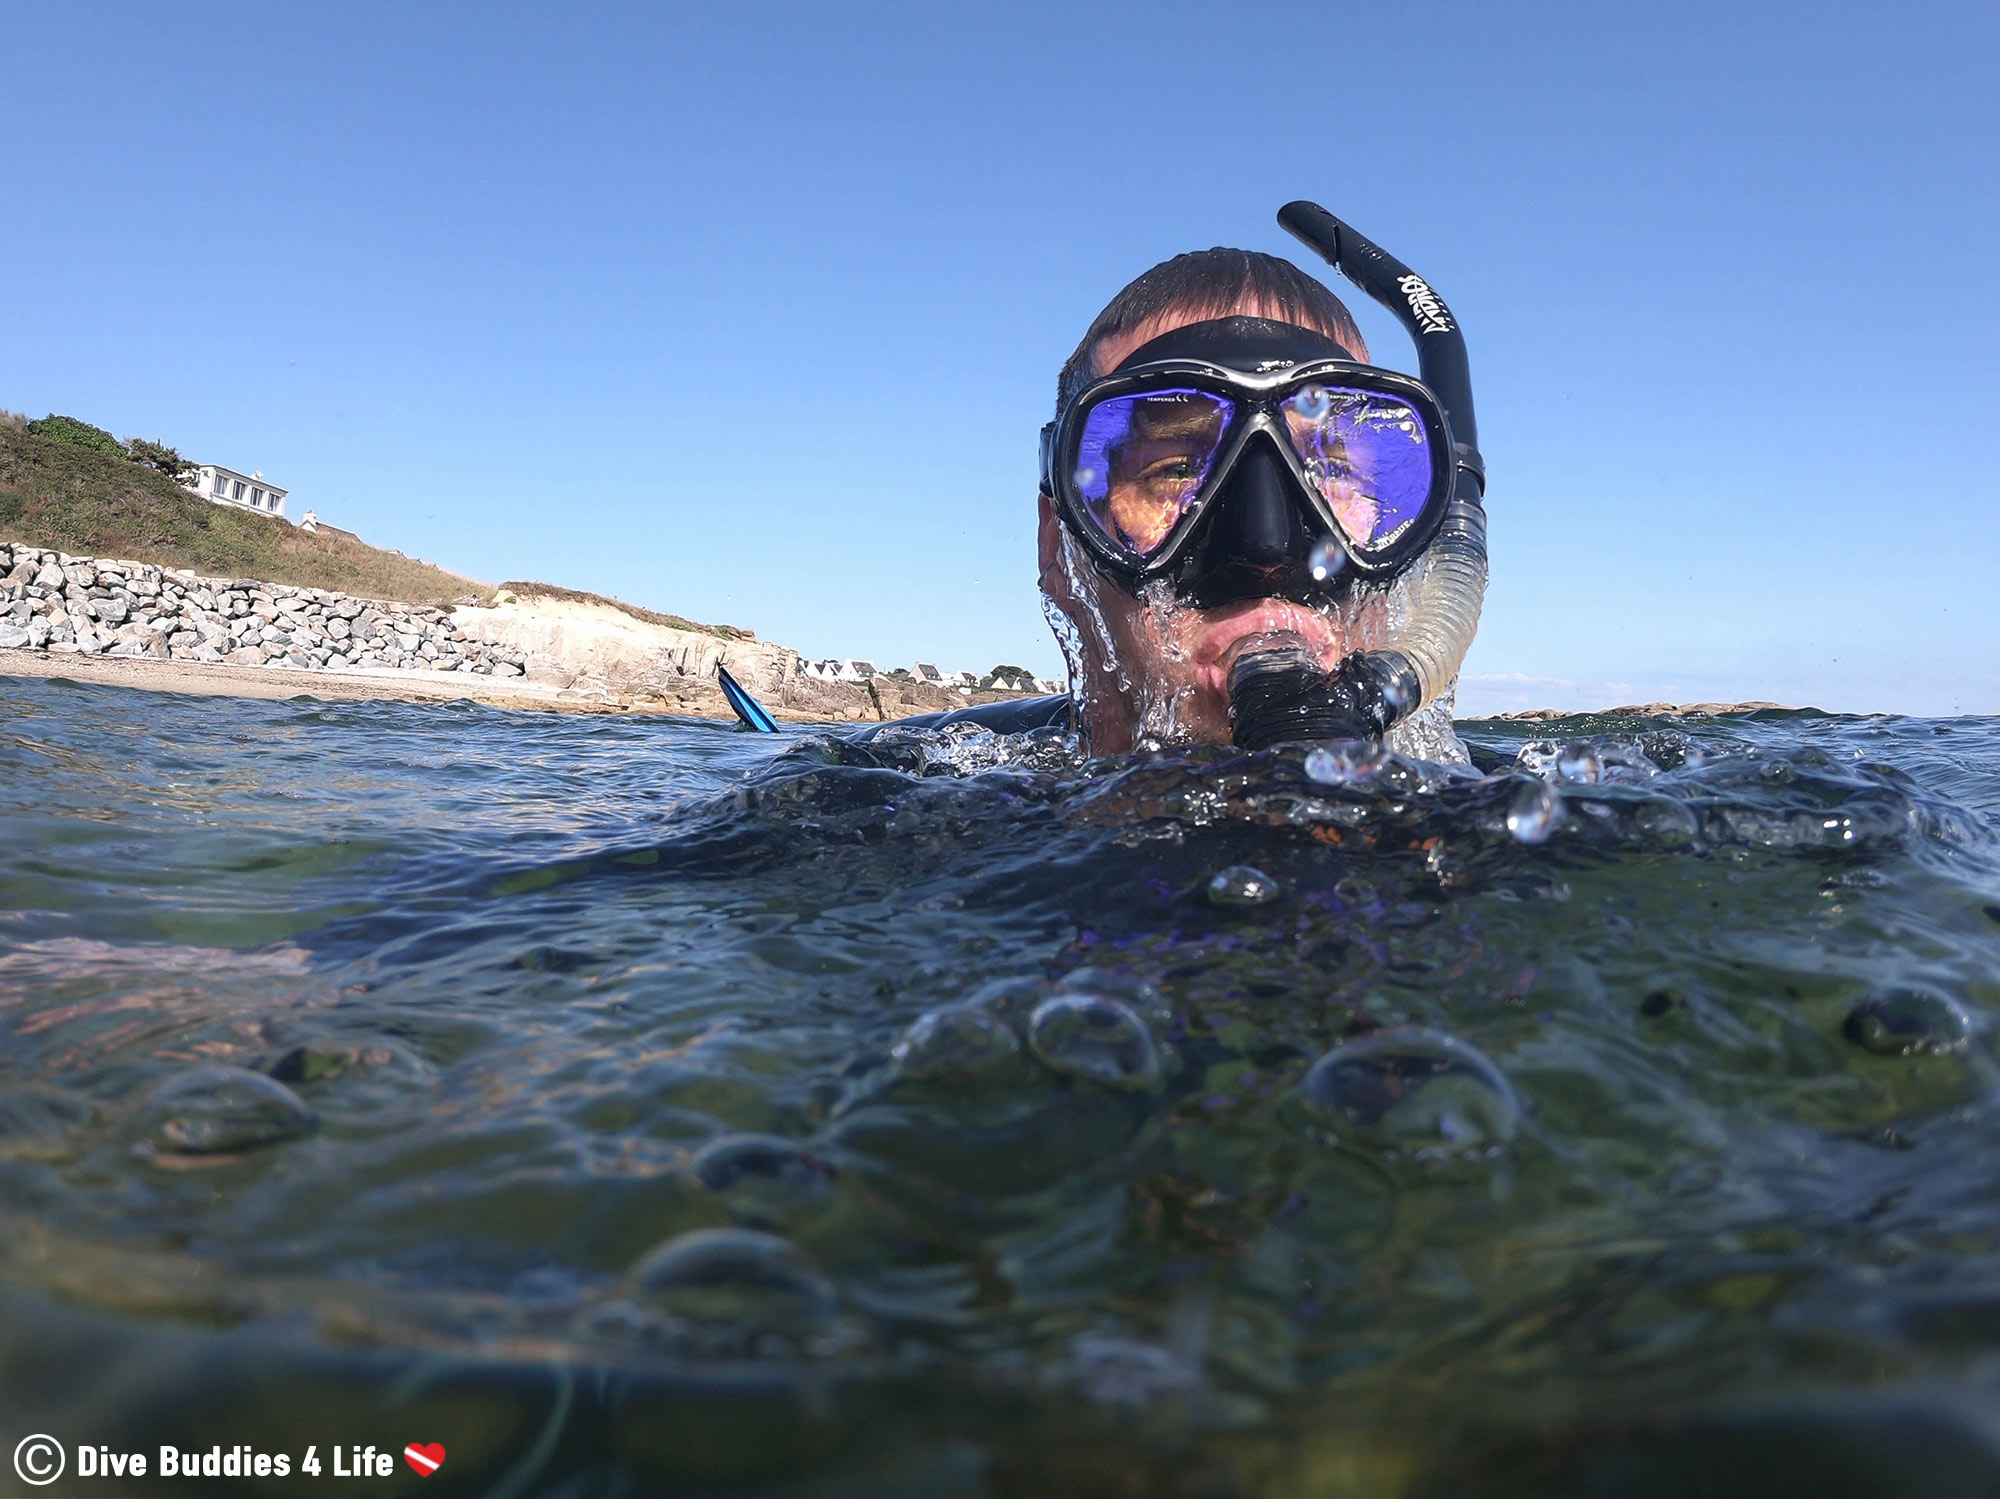 Joey Emerging From The Water In France With His Mask And Snorkel, Underwater Europe